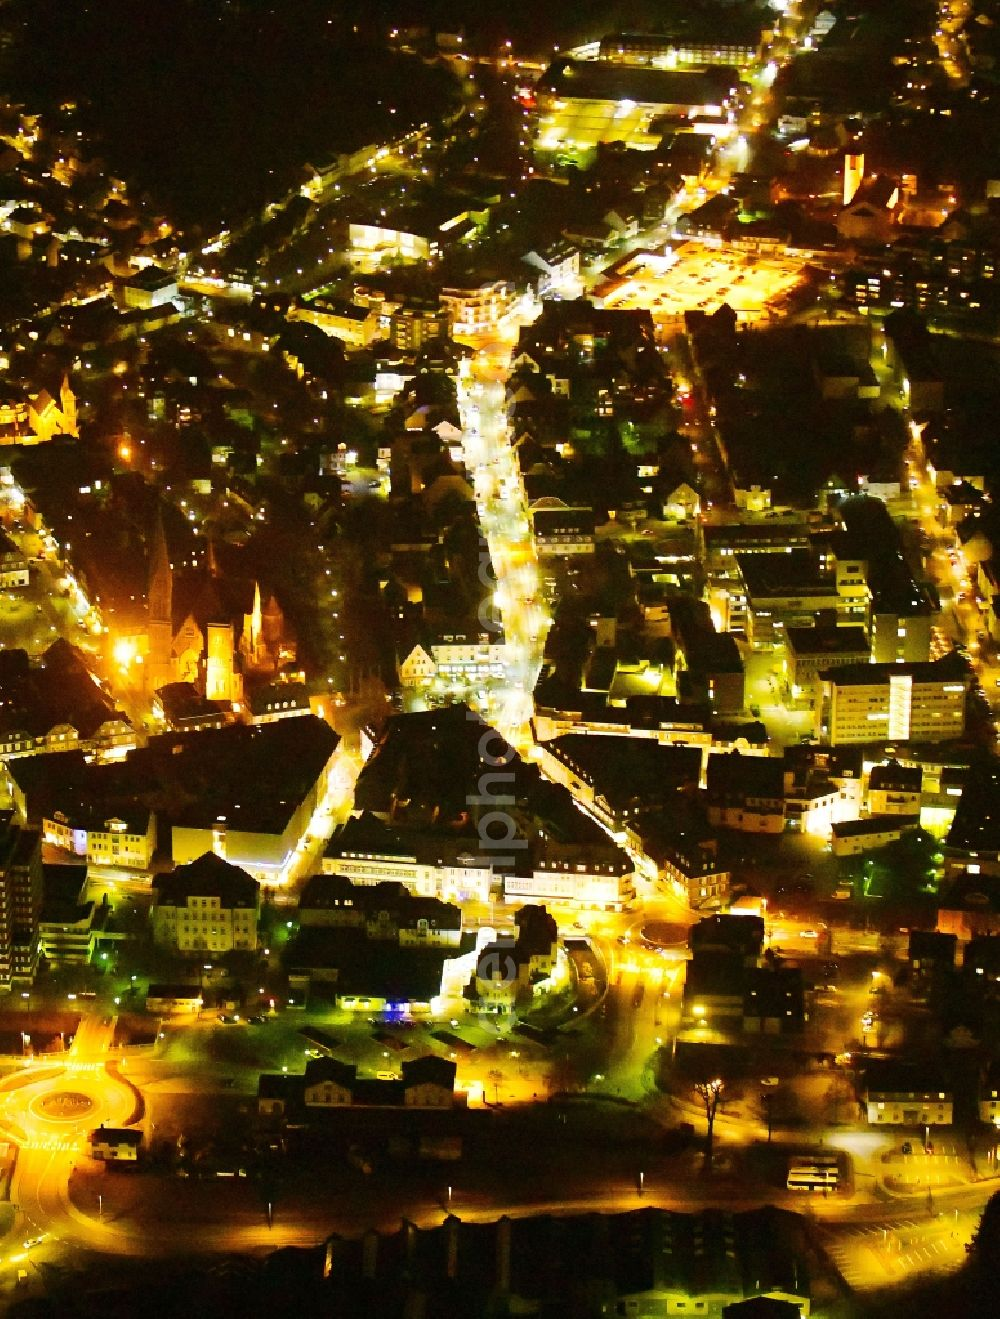 Aerial photograph at night Olpe - Night lighting city view on down town in Olpe in the state North Rhine-Westphalia, Germany